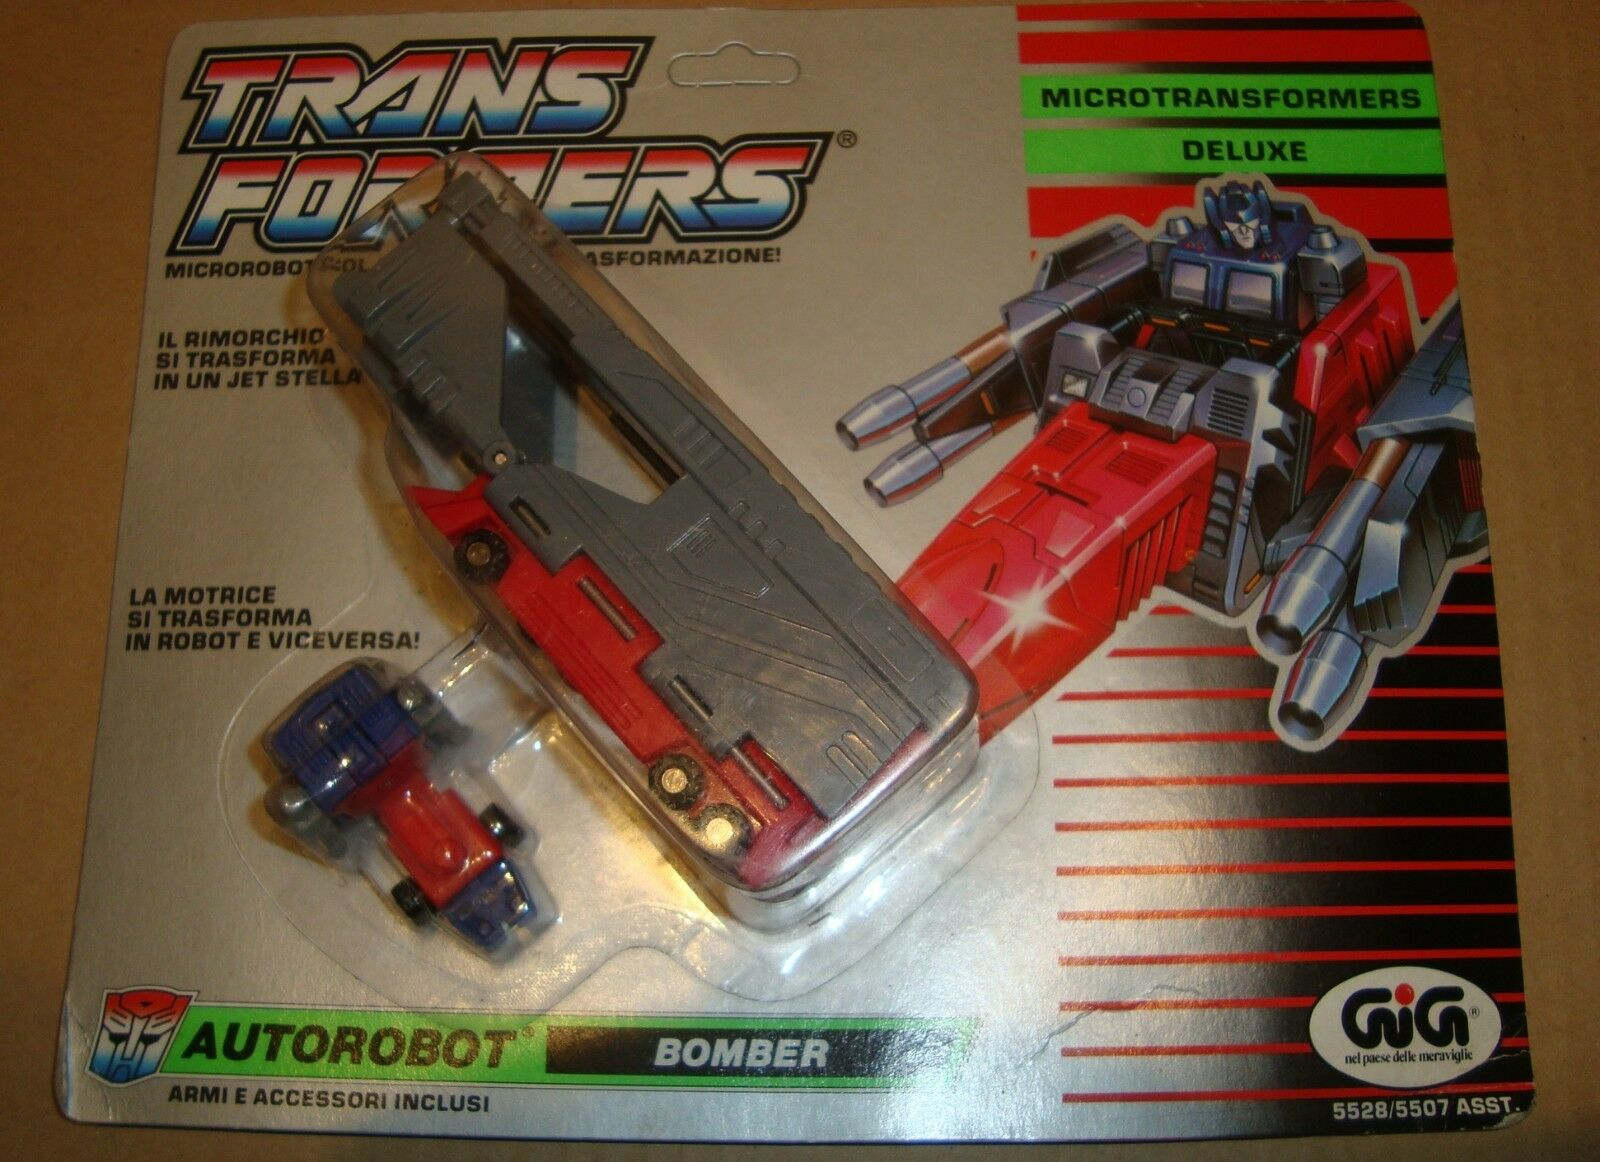 TRANSFORMERS MICROMASTER 5528 5507 DELUXE AUToroBOT BOMBER OVERLOAD HASBRO GIG